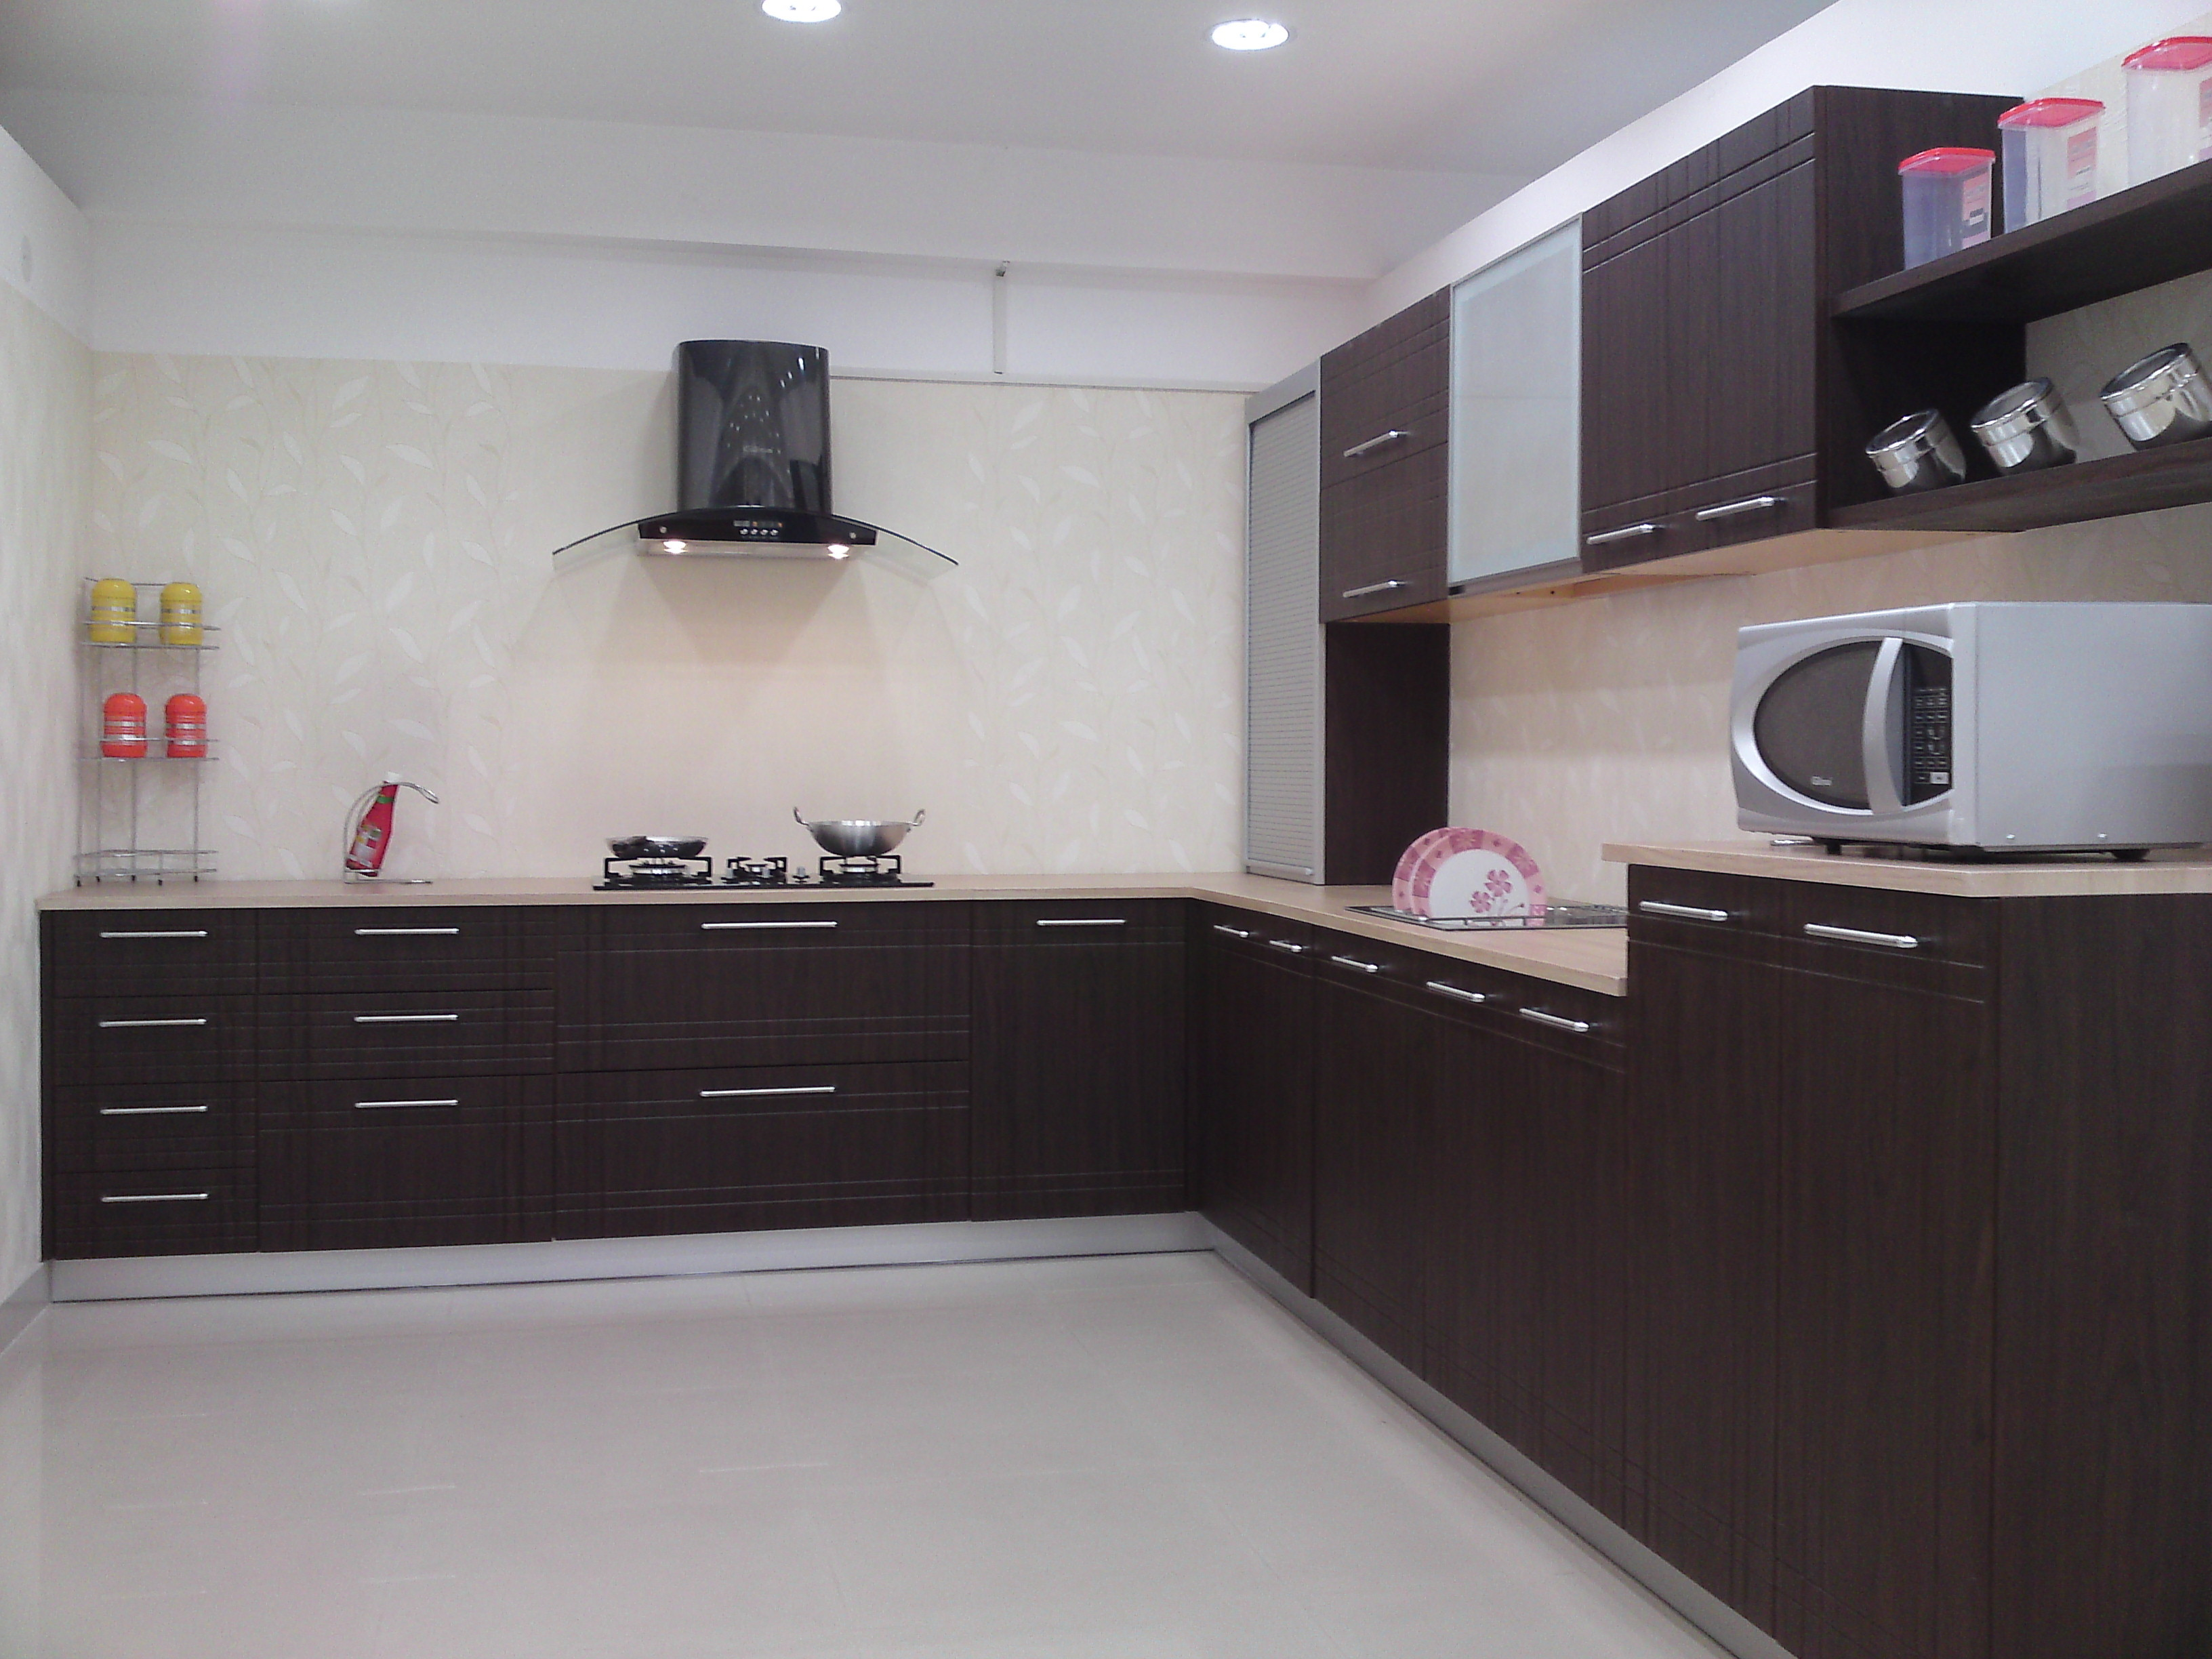 Home Spaces Intelligent Solutions Modular Kitchens In Hyderabad Wardrobe Furniture India